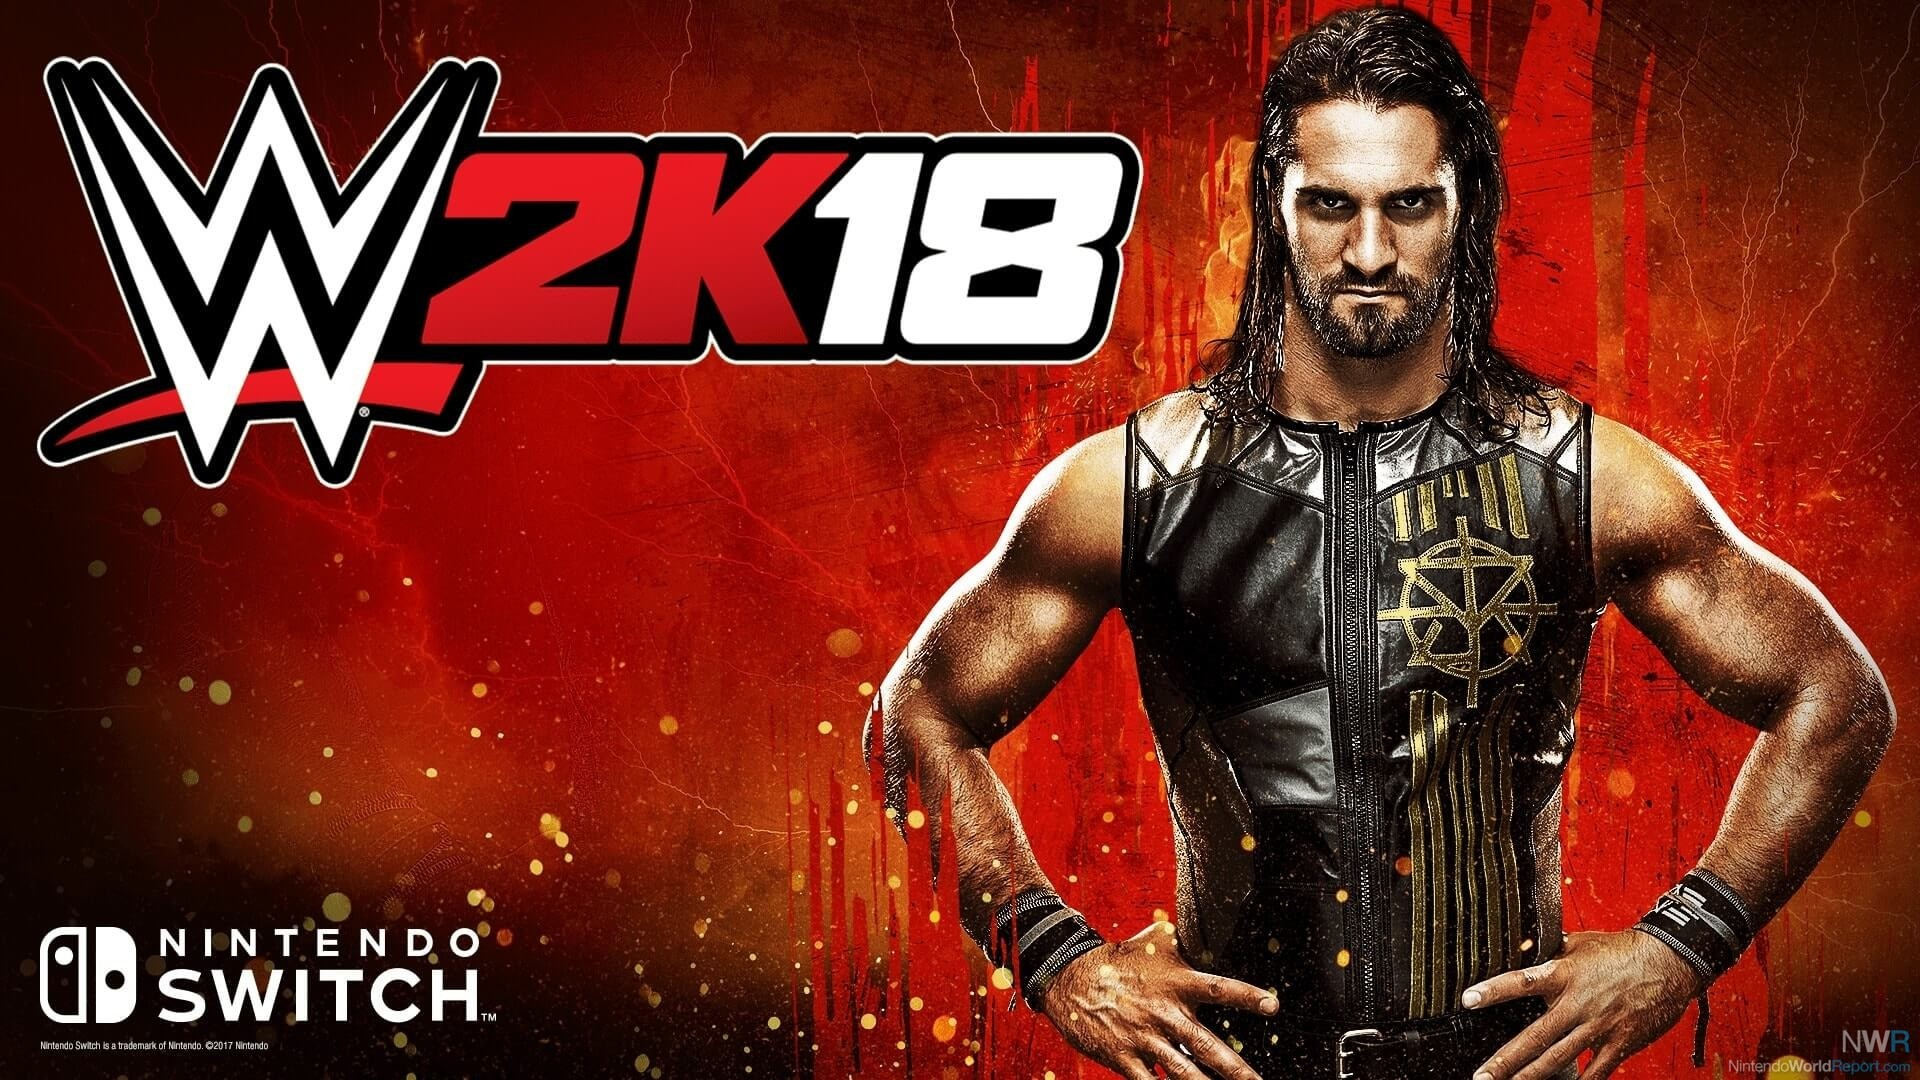 WWE 2K18 Is Officially Coming To Nintendo Switch